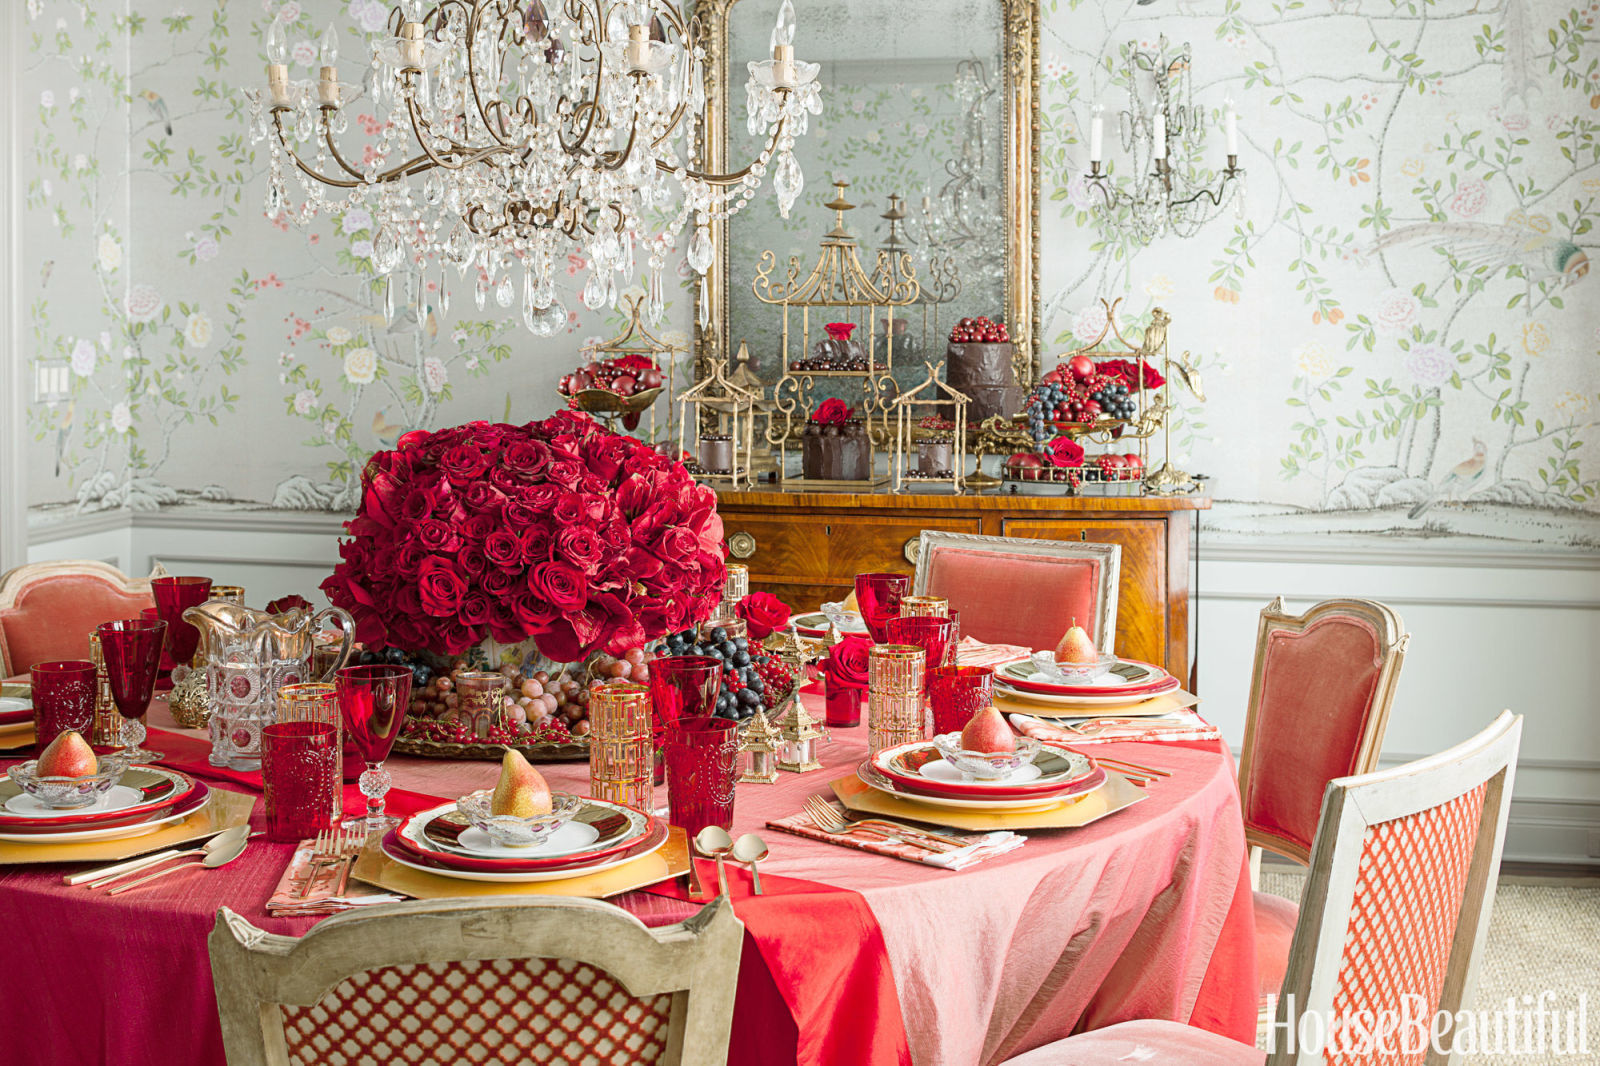 12 valentine's day table decorations - romantic tablescape ideas